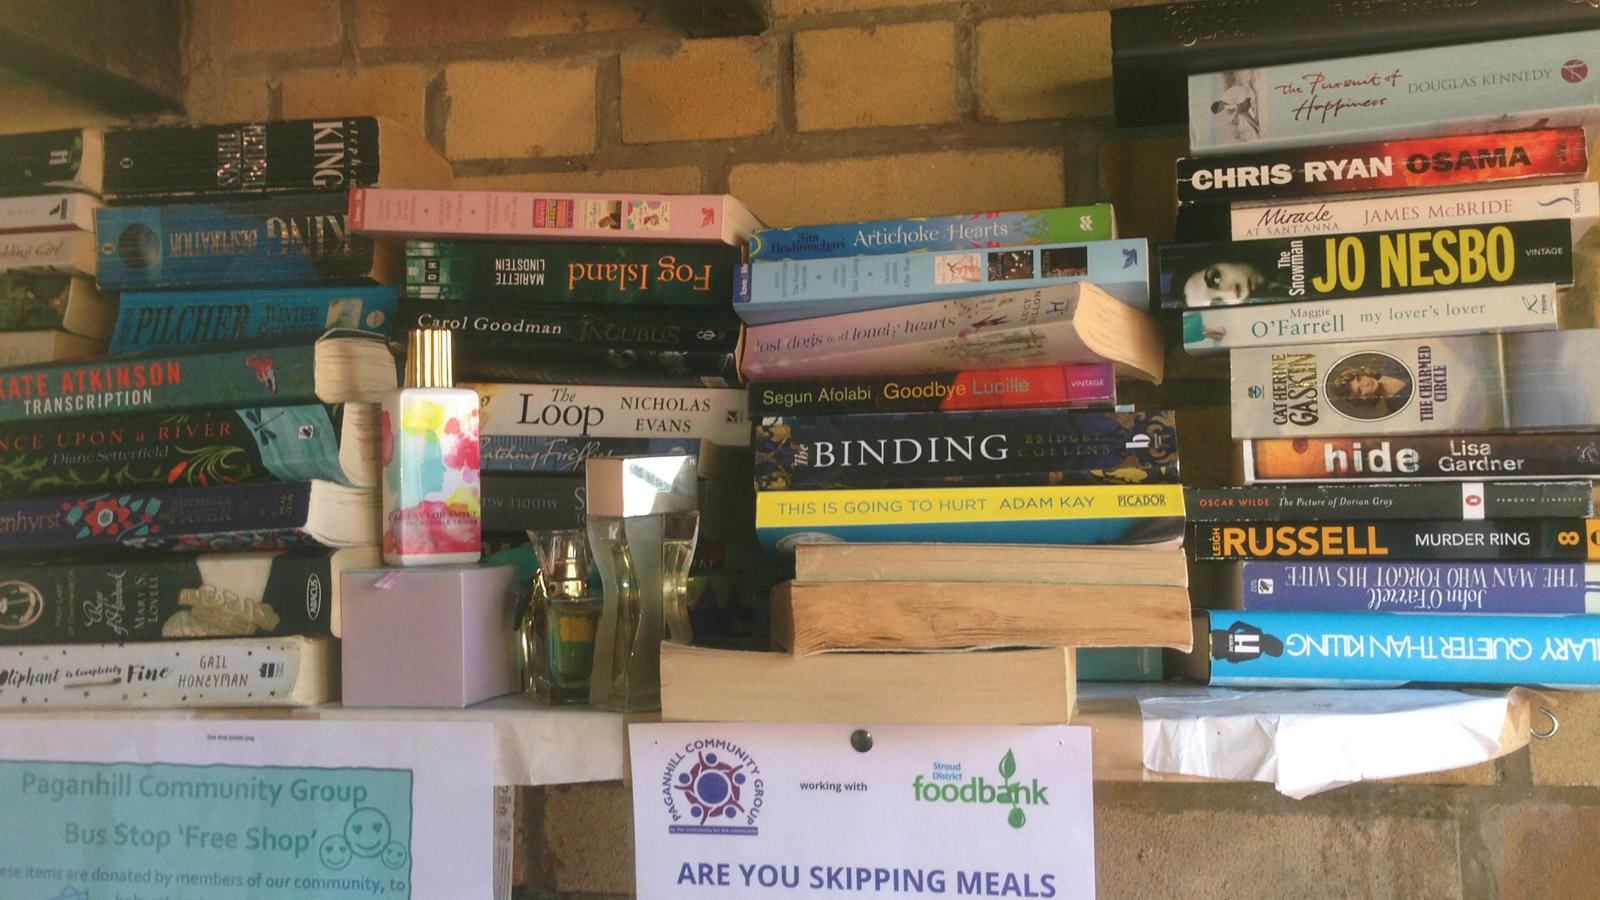 Books donated to the Paganhill Community Project Bus Stop Shop